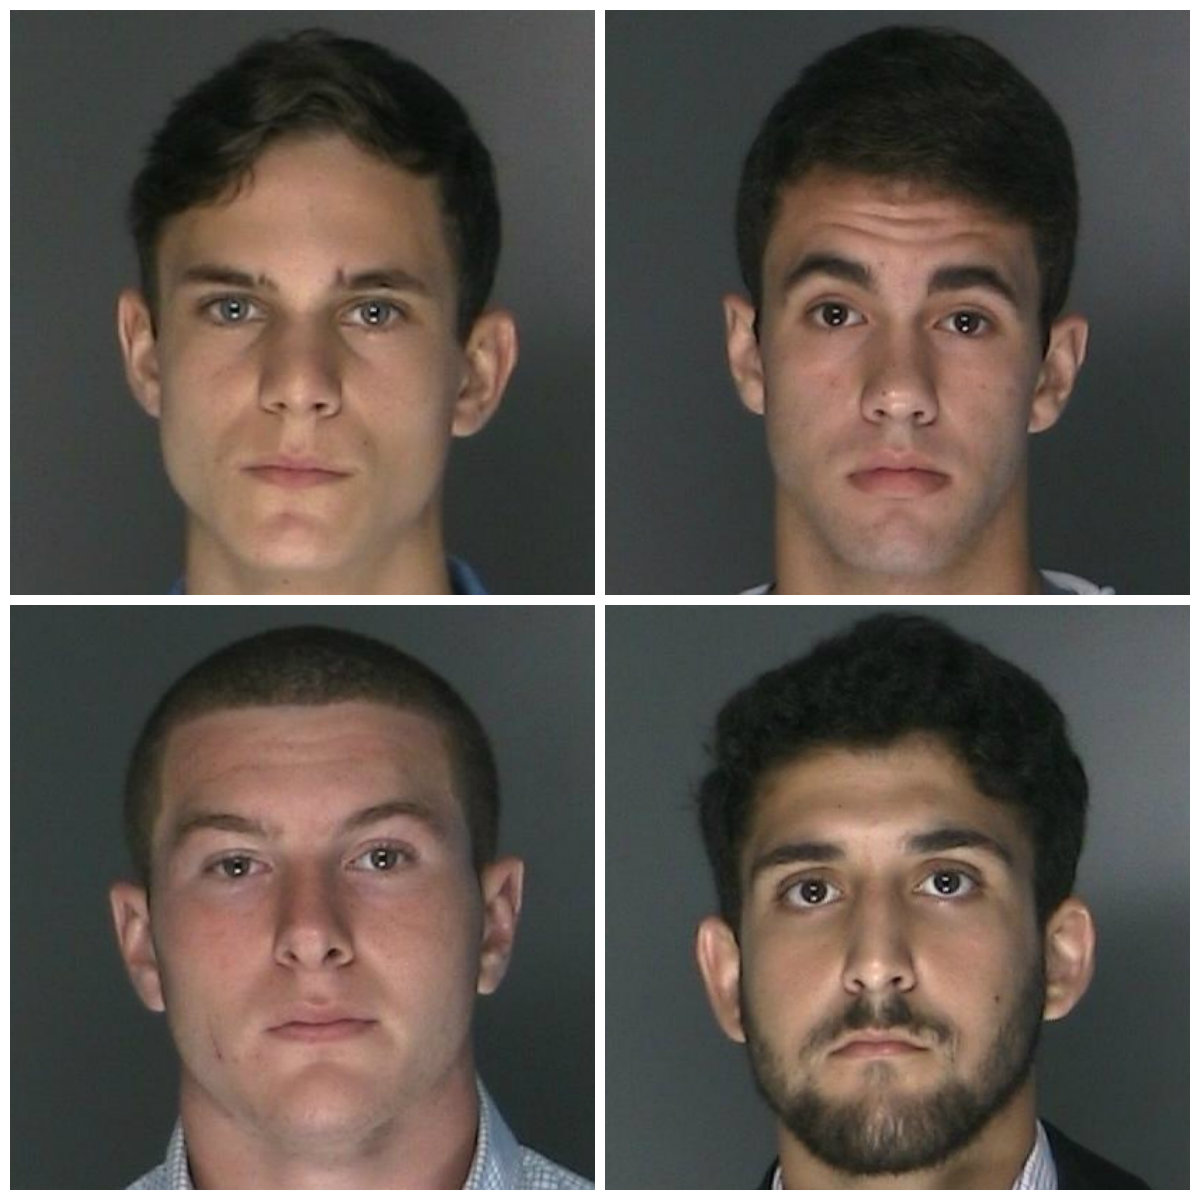 From top left: John Glenn High School students Nicholas Collins, of Greenlawn, Julius Dimino, of East Northport, Eric Lamay, of Greenlawn, and Michael Plackis, of East Northport. They were arrested for driving onto the Northport Soccer Complex soccer fields earlier in the month and causing $10,000 in damage.